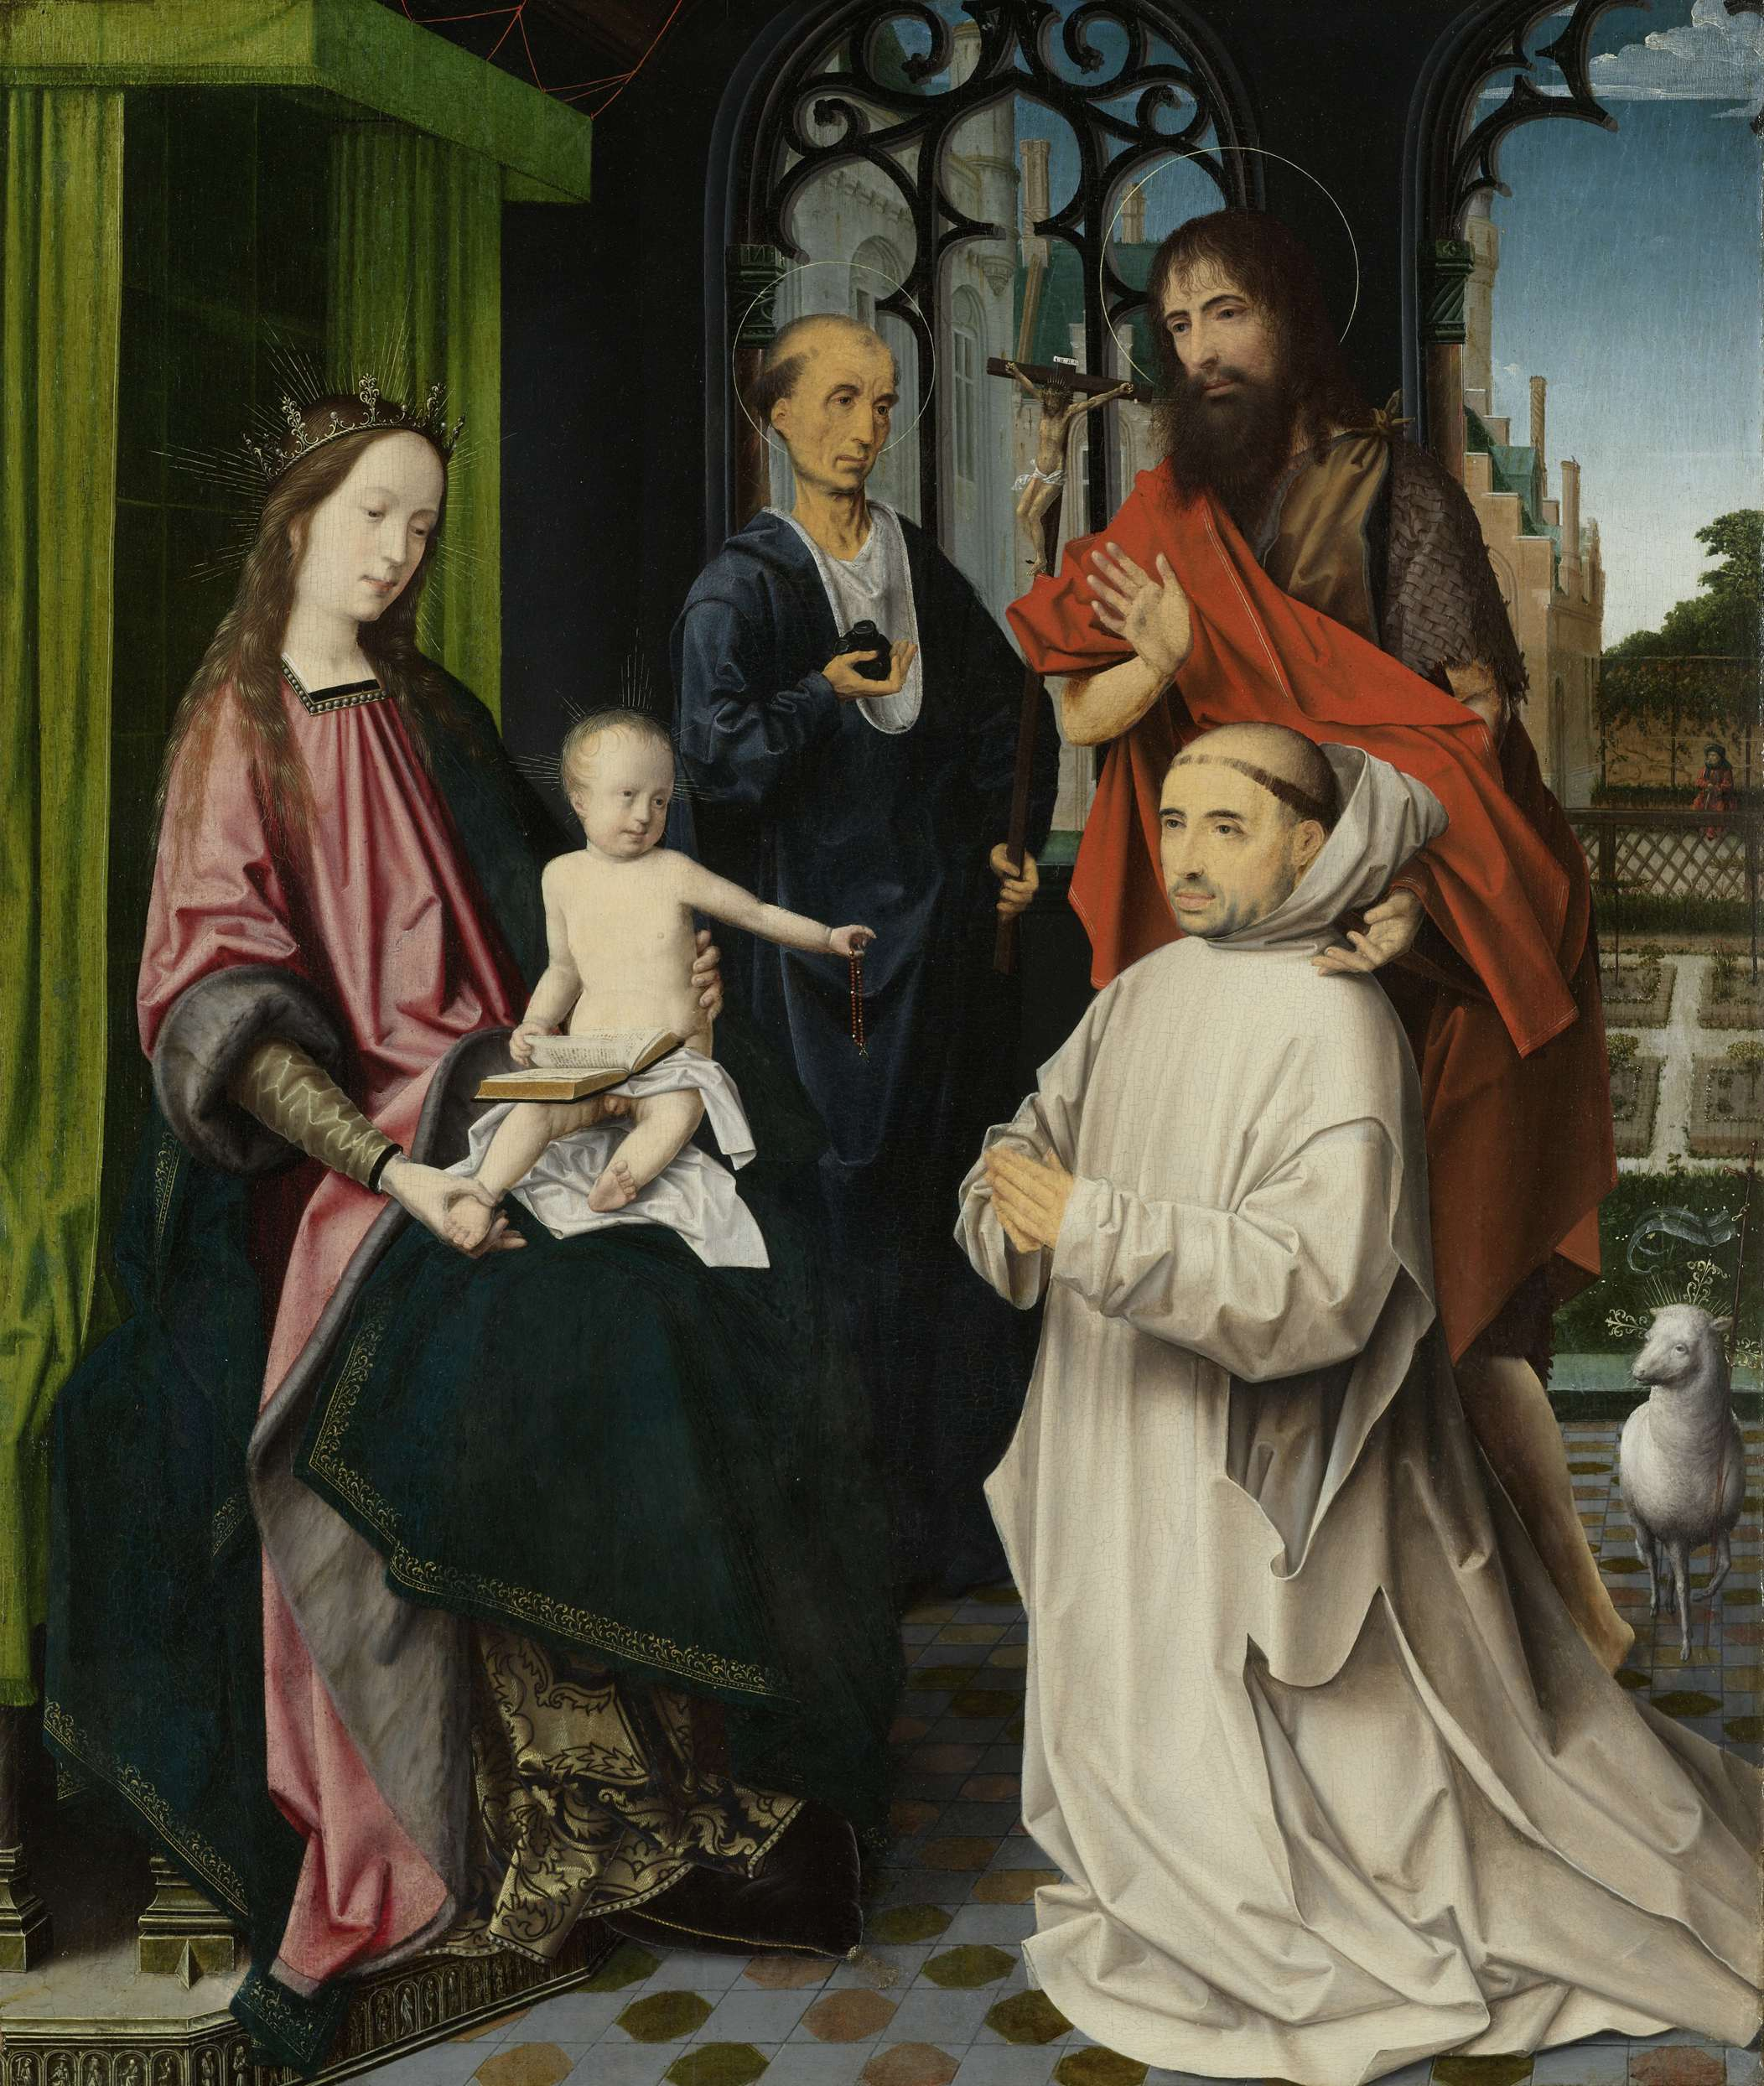 Virgin-and-Child-Enthroned-with-Saints-Jerome-and-John-the-Baptist-and-a-Carthusian-Monk-ca-1510-Jan-Provoost.2389